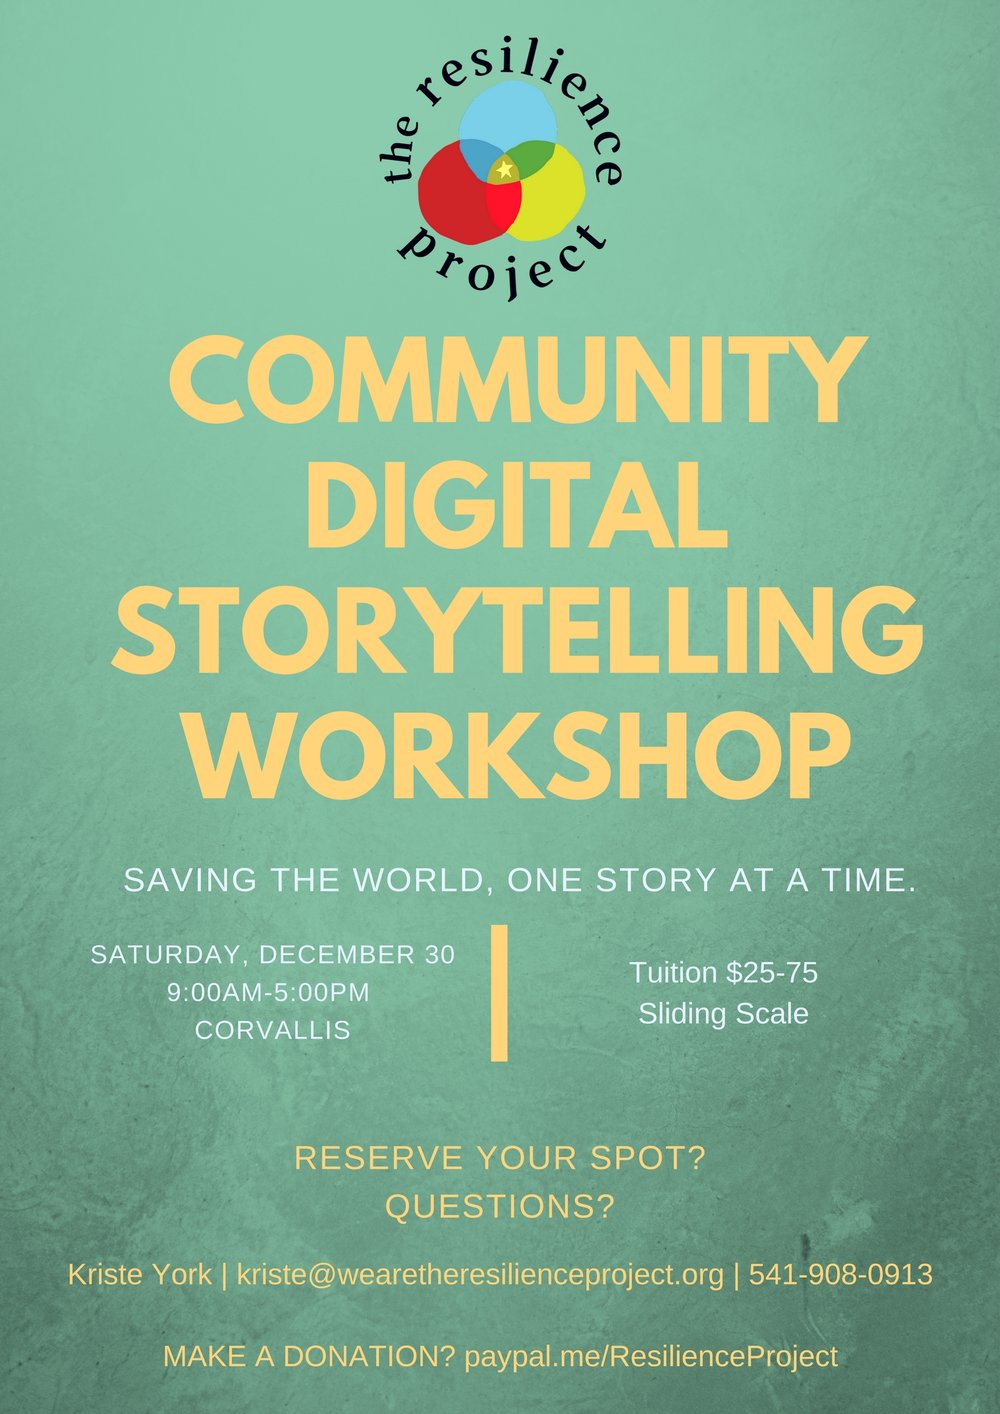 On the edge of 2018, reflect on the 2017 story to capture with narrative and digital editing.   Join the Resilience Project for a 1-day digital storytelling workshop! On the last Saturday of the month, arrive at the Benton Center with a story you want to tell, leave with a digital story, and stronger ties to other people in our community. This workshop is open to all community members age 16 and over.  The suggested donation for this workshop is $75, but please pay what you can afford. You can also make a donation to enable another community member to attend.  Email Kriste York for more information and to register.